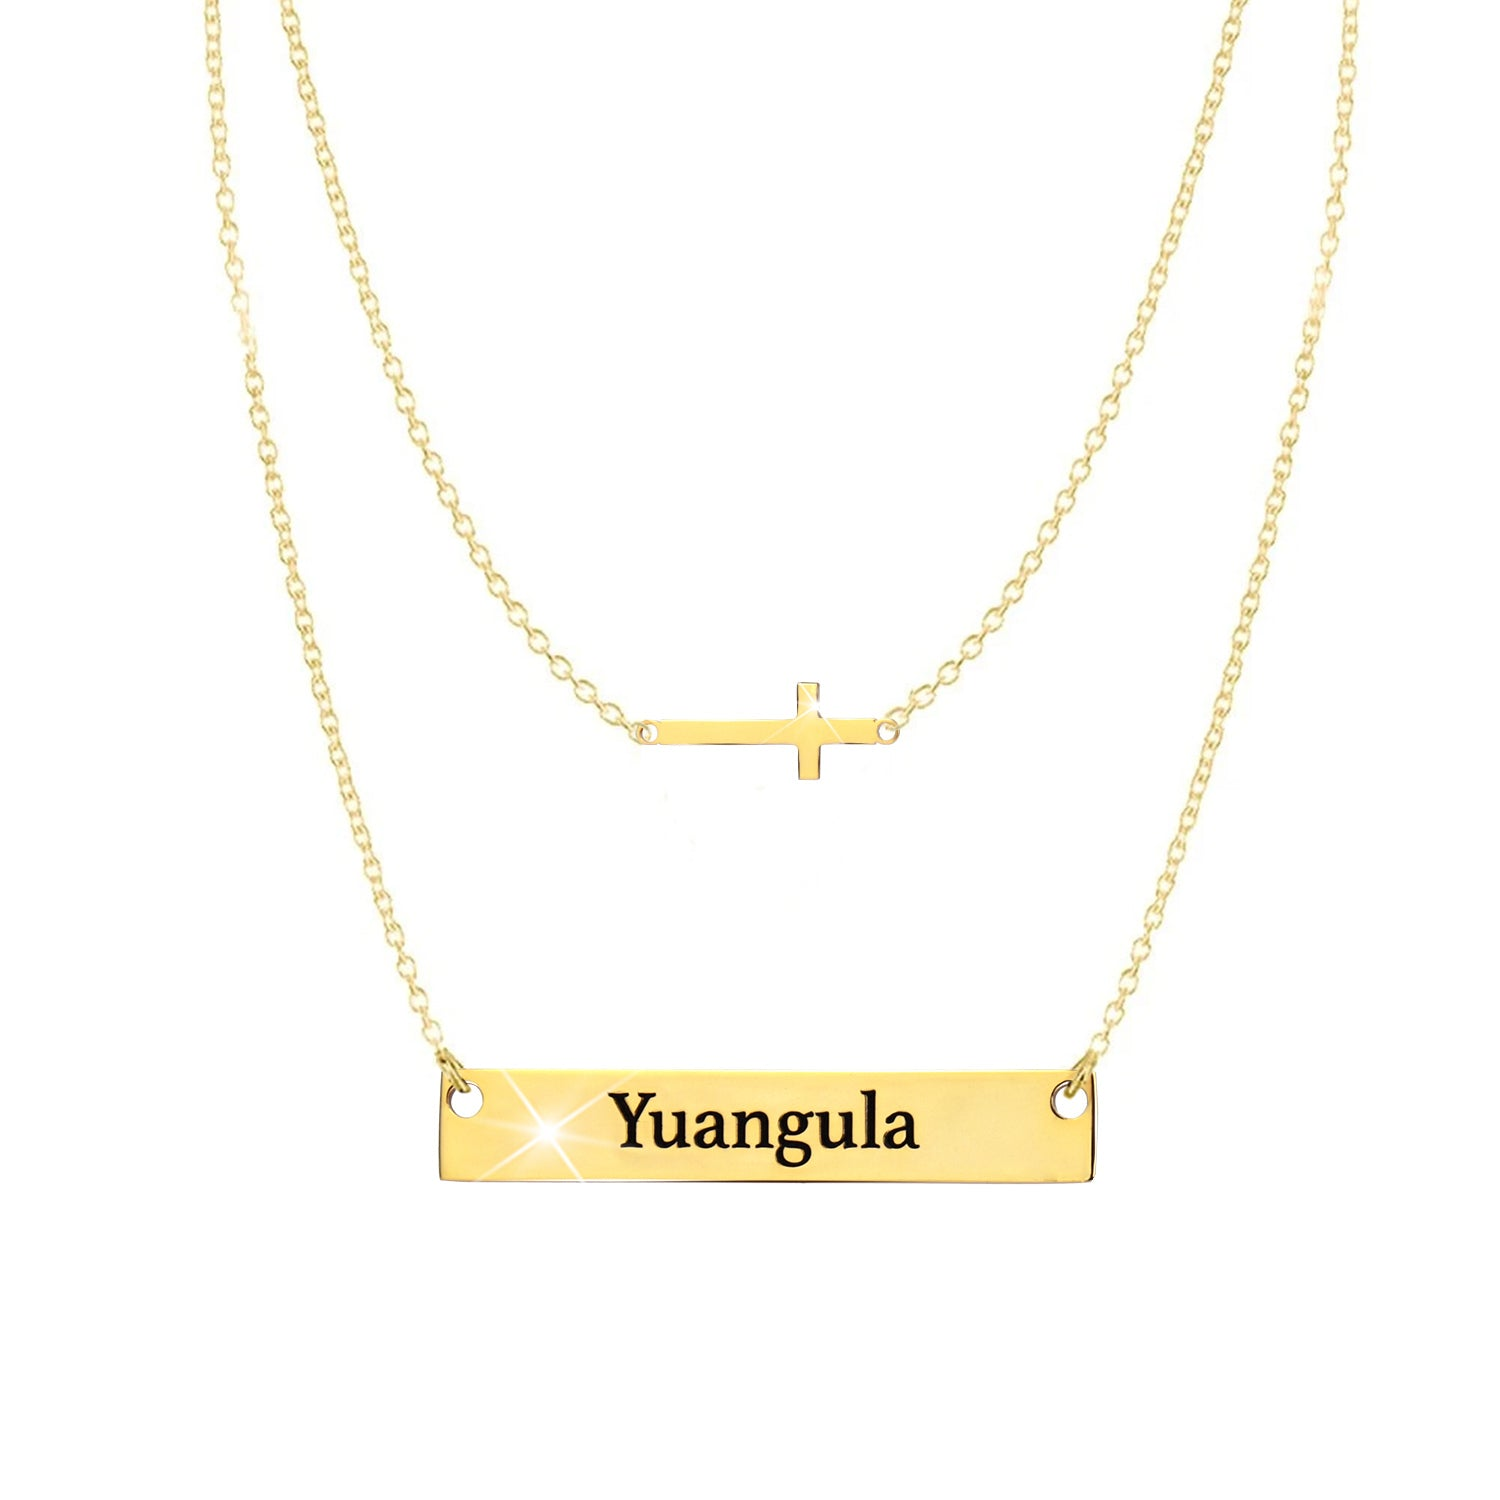 18K Gold Plated Cross Engraved Name Bar Necklace